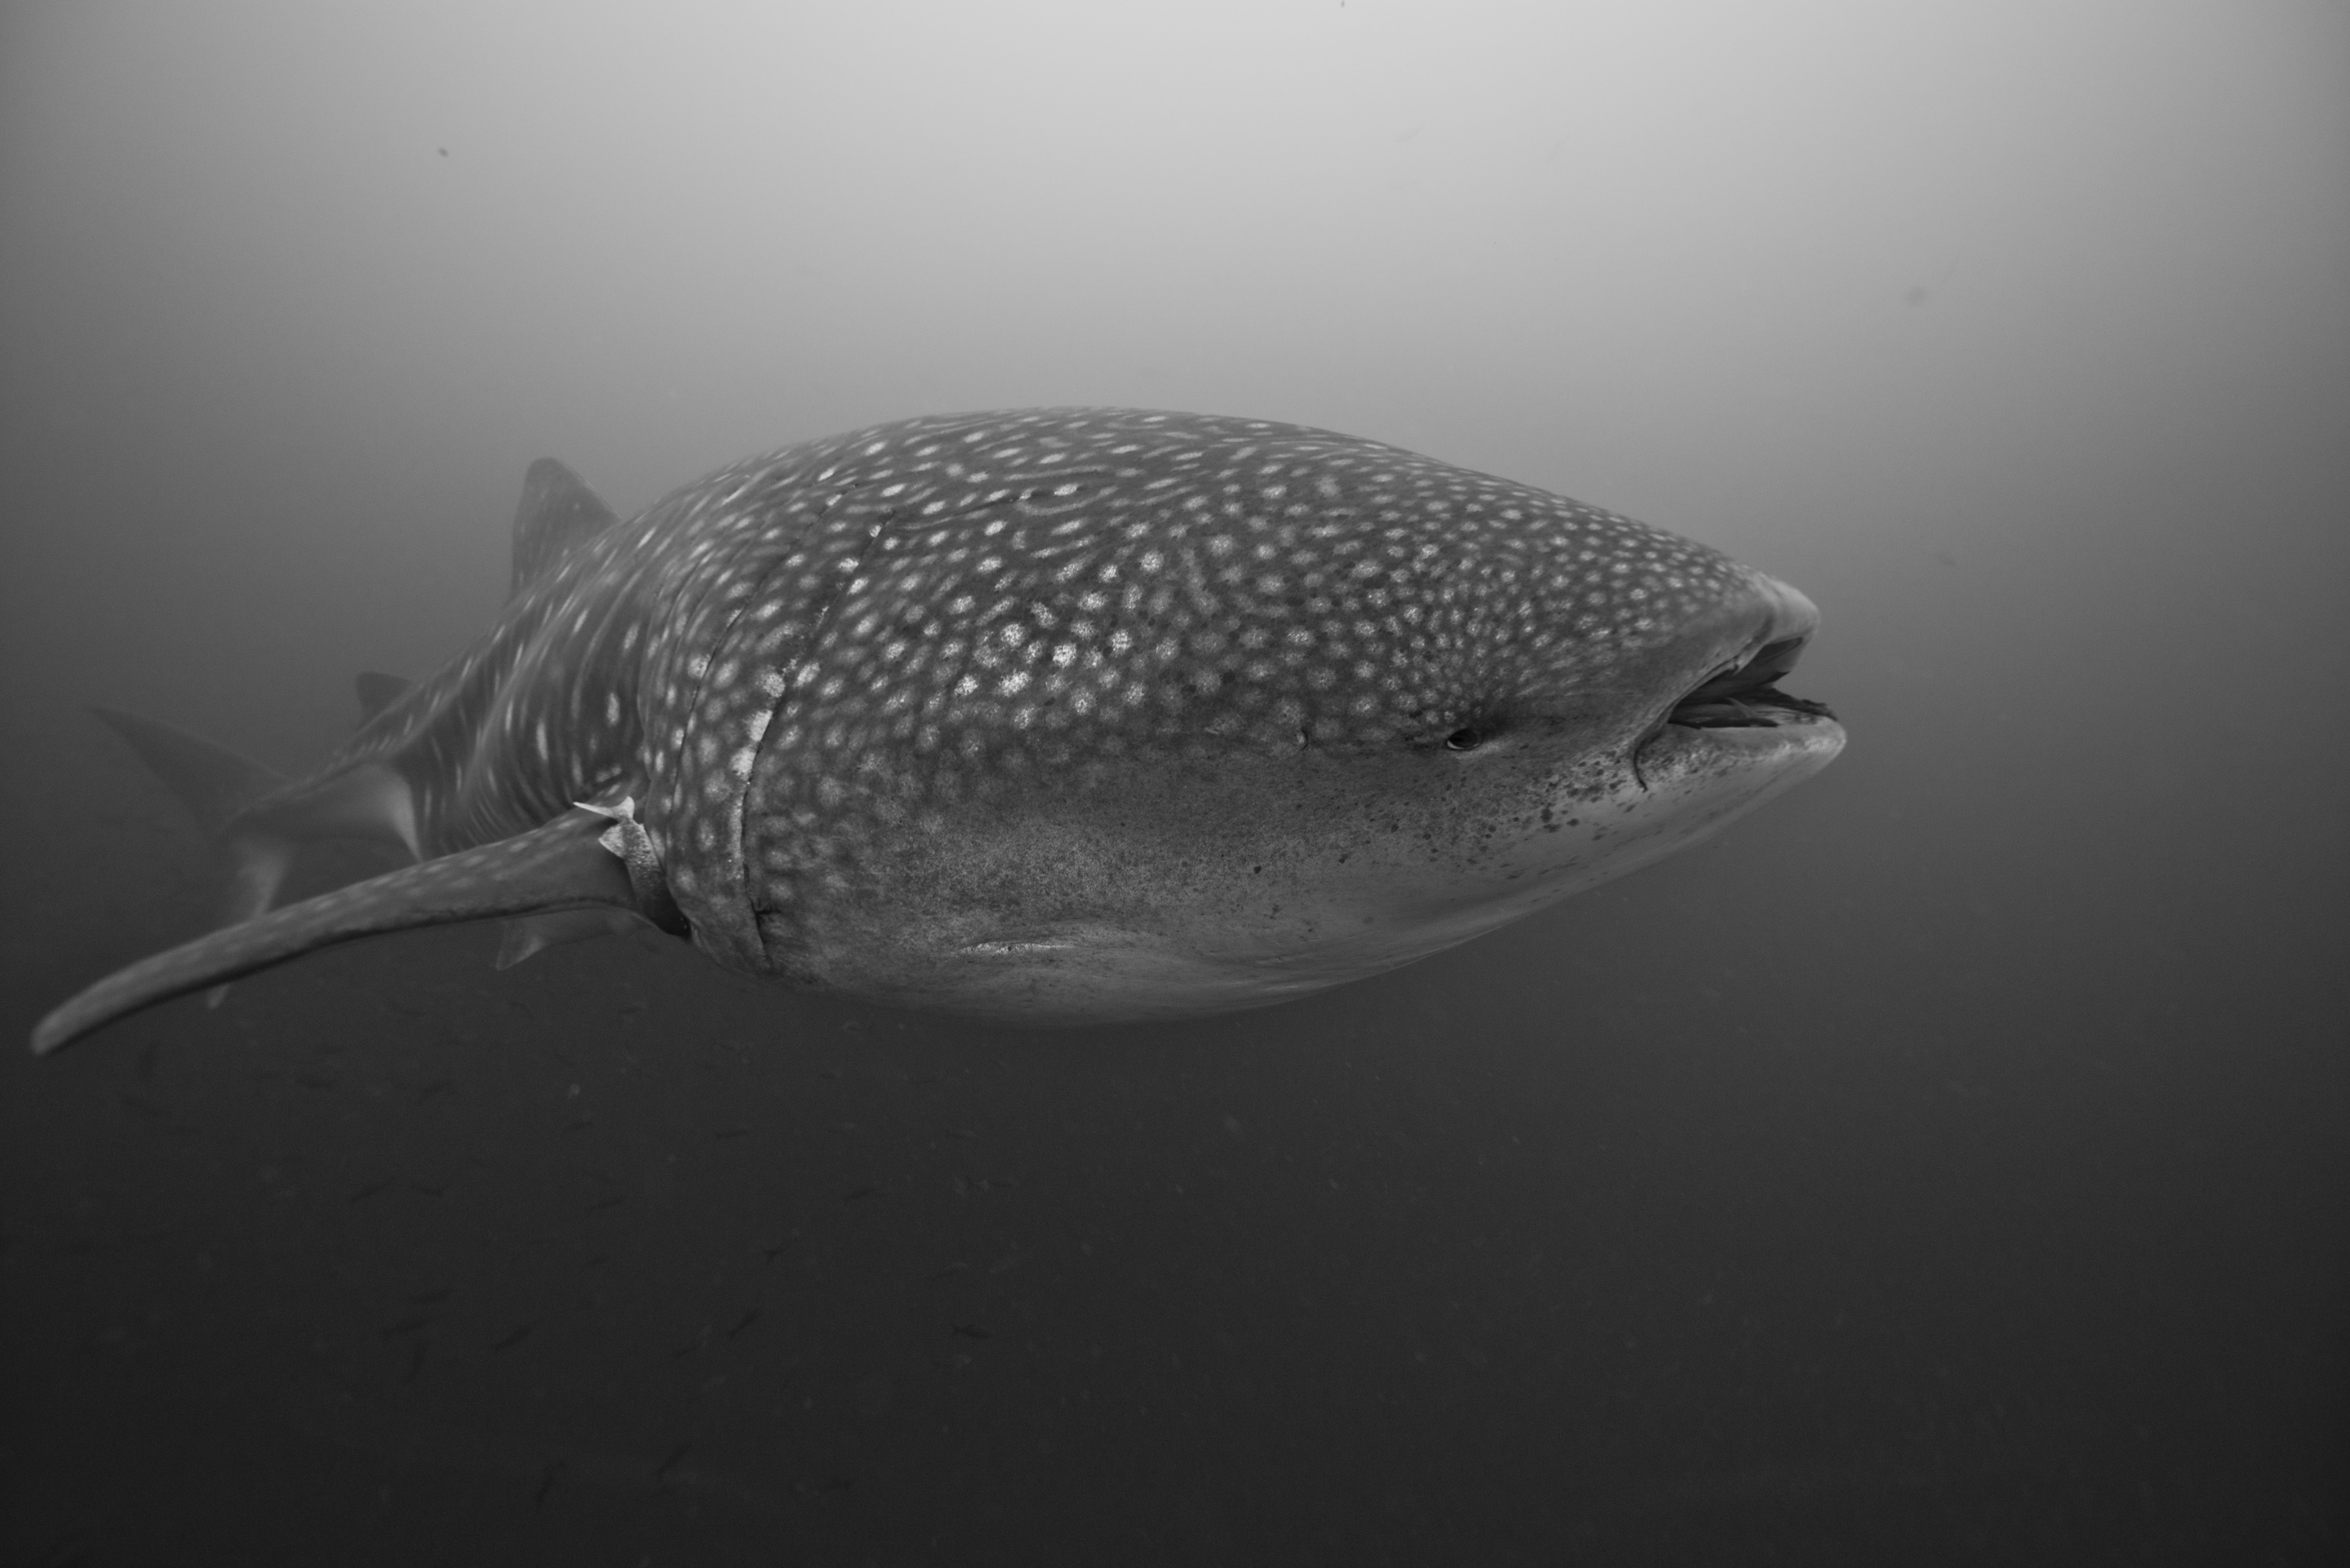 Whale shark Galapagos Islands - Action Scuba photographer